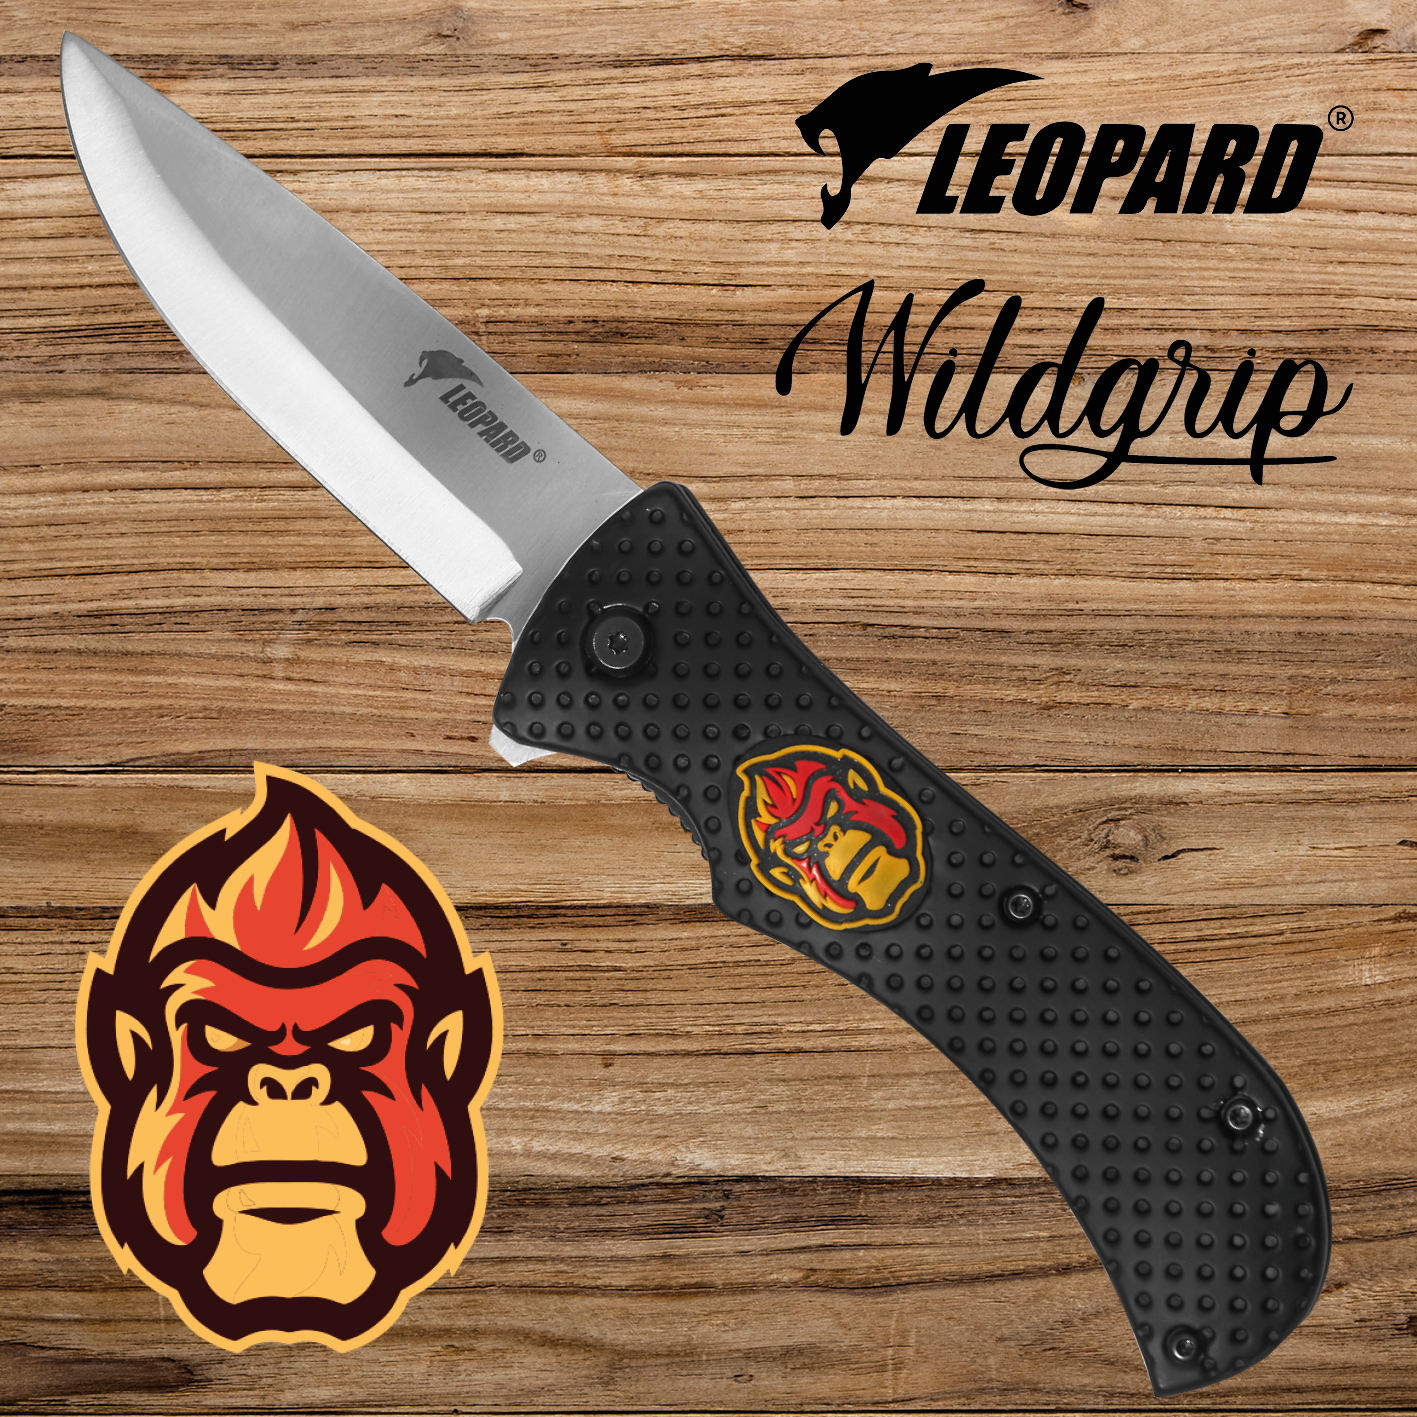 WILDGRIP EDC knives & folding pocket knife with gorilla head - Rescue, survival & outdoor knives use - 48h Fast Europe delivery